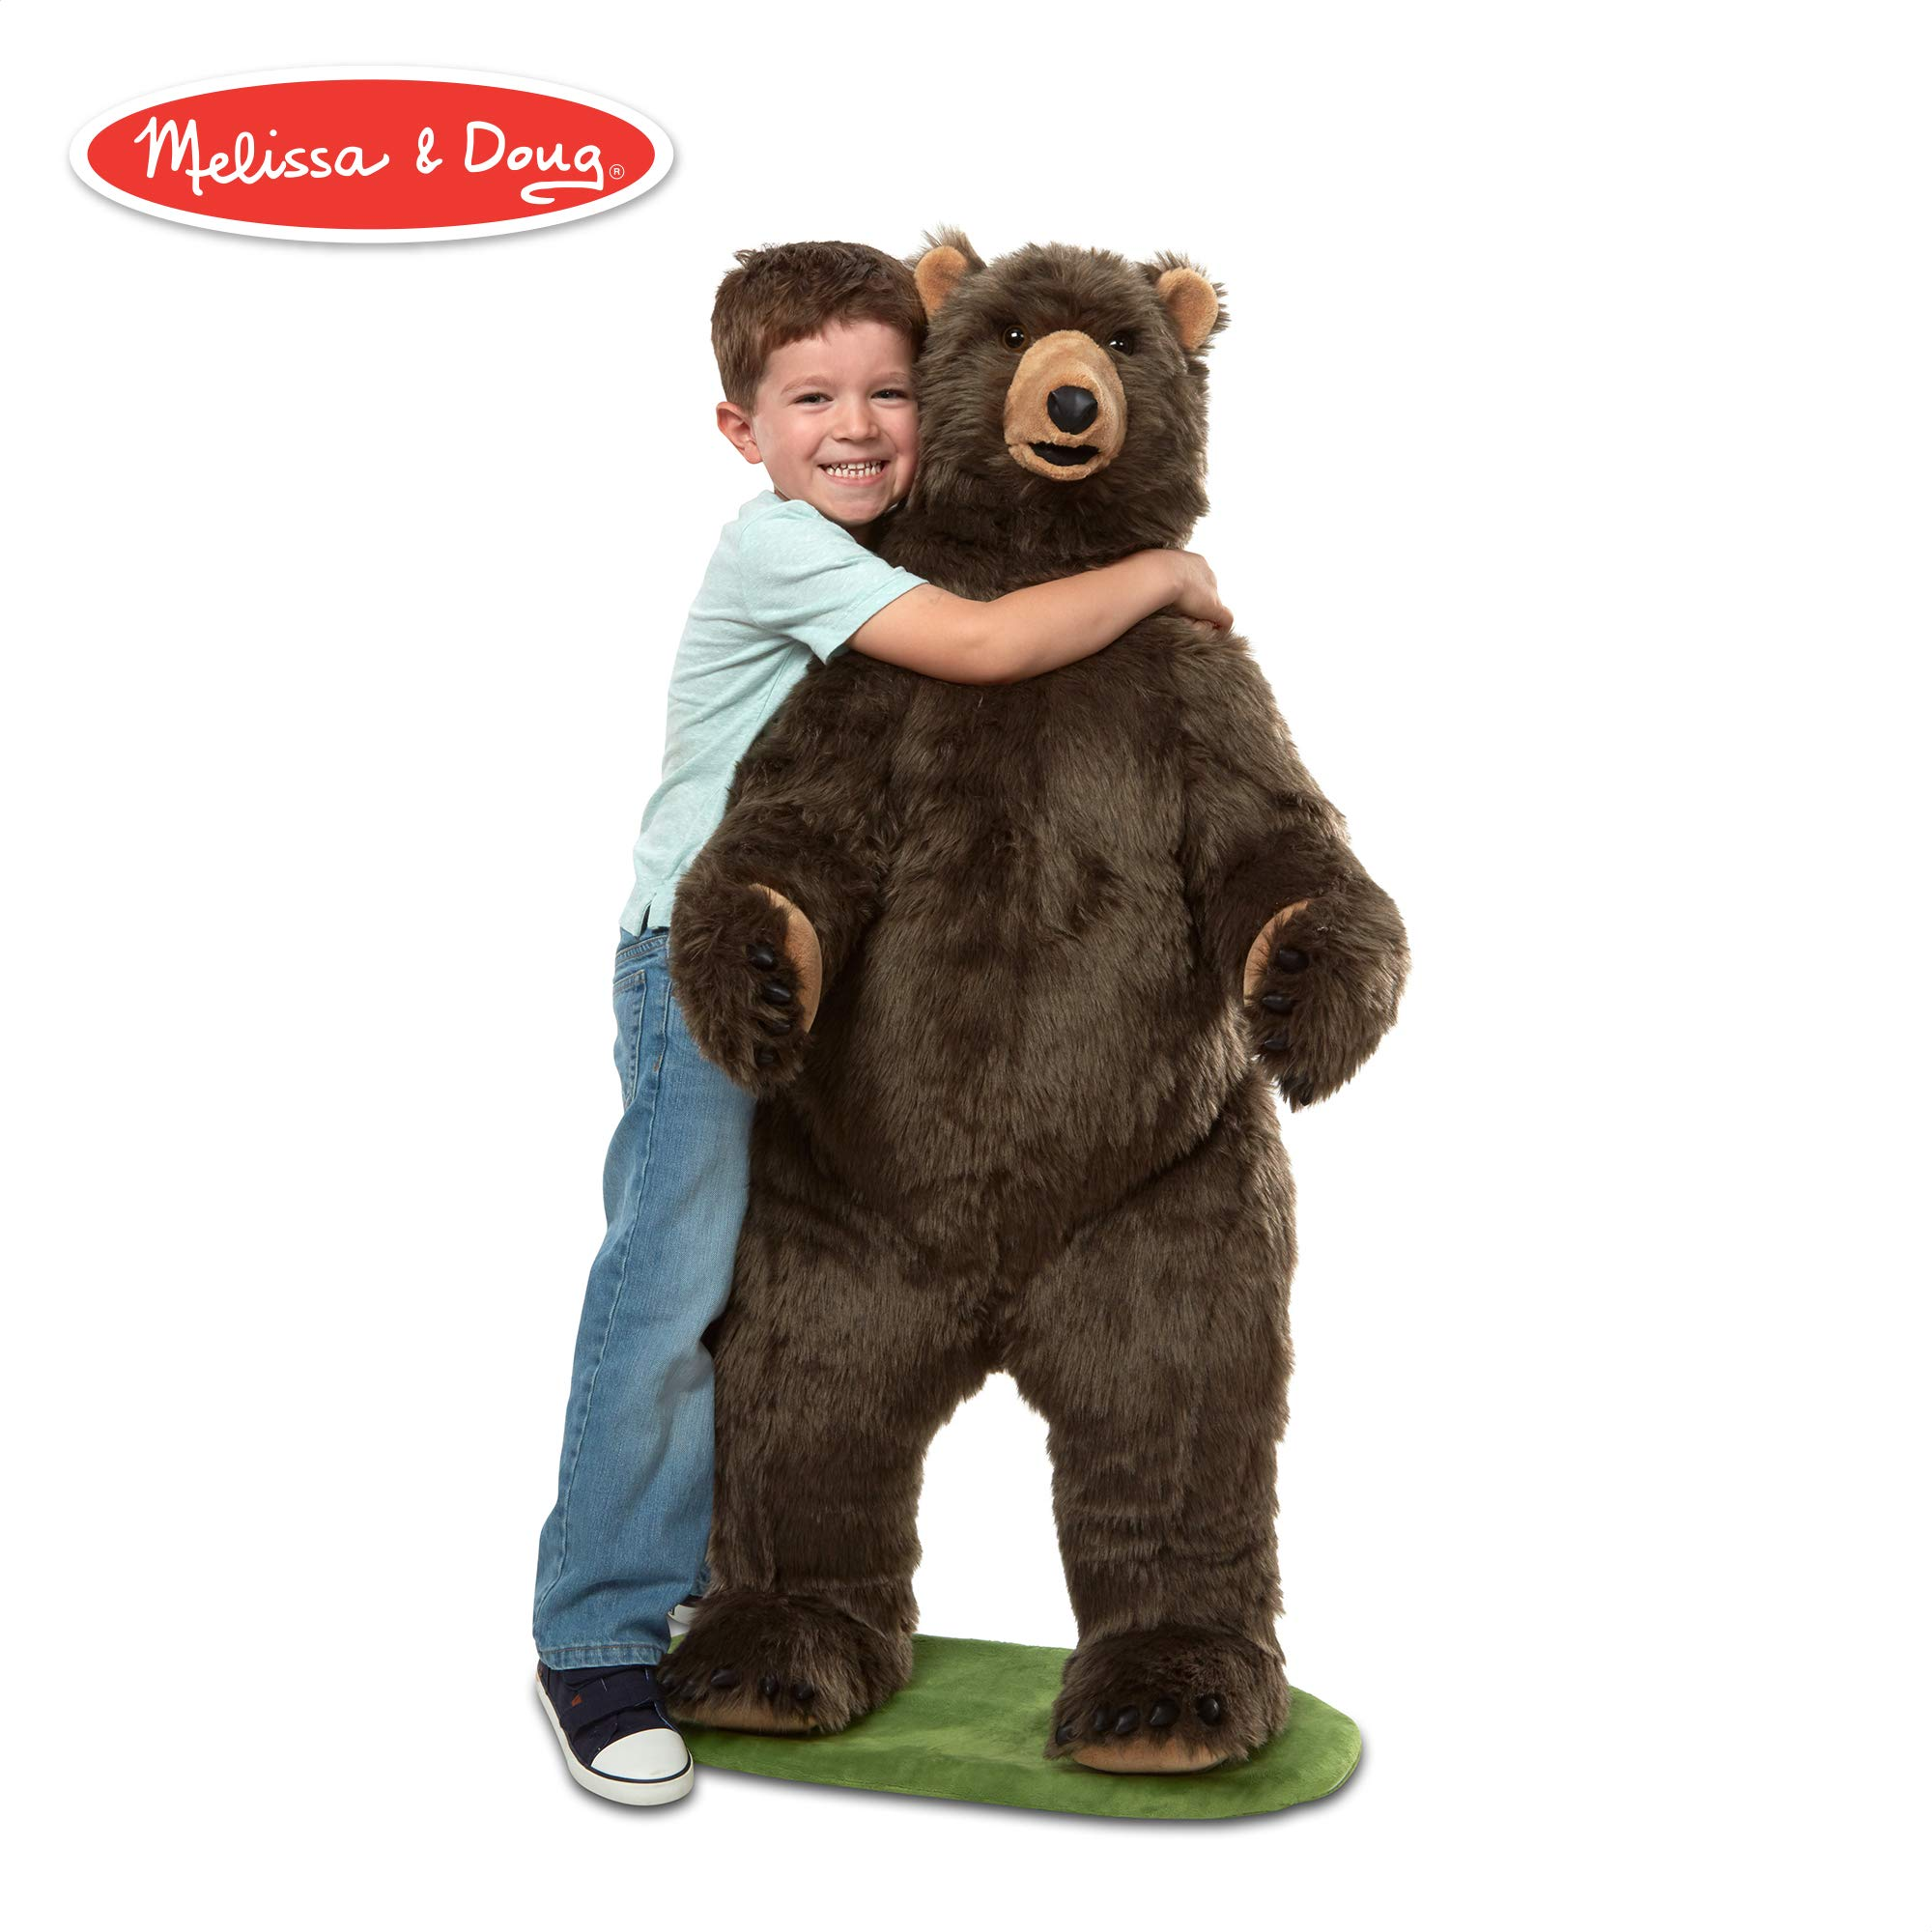 Melissa & Doug Giant Lifelike Plush Grizzly Bear Standing Stuffed Animal (Almost 4 Feet Tall) by Melissa & Doug